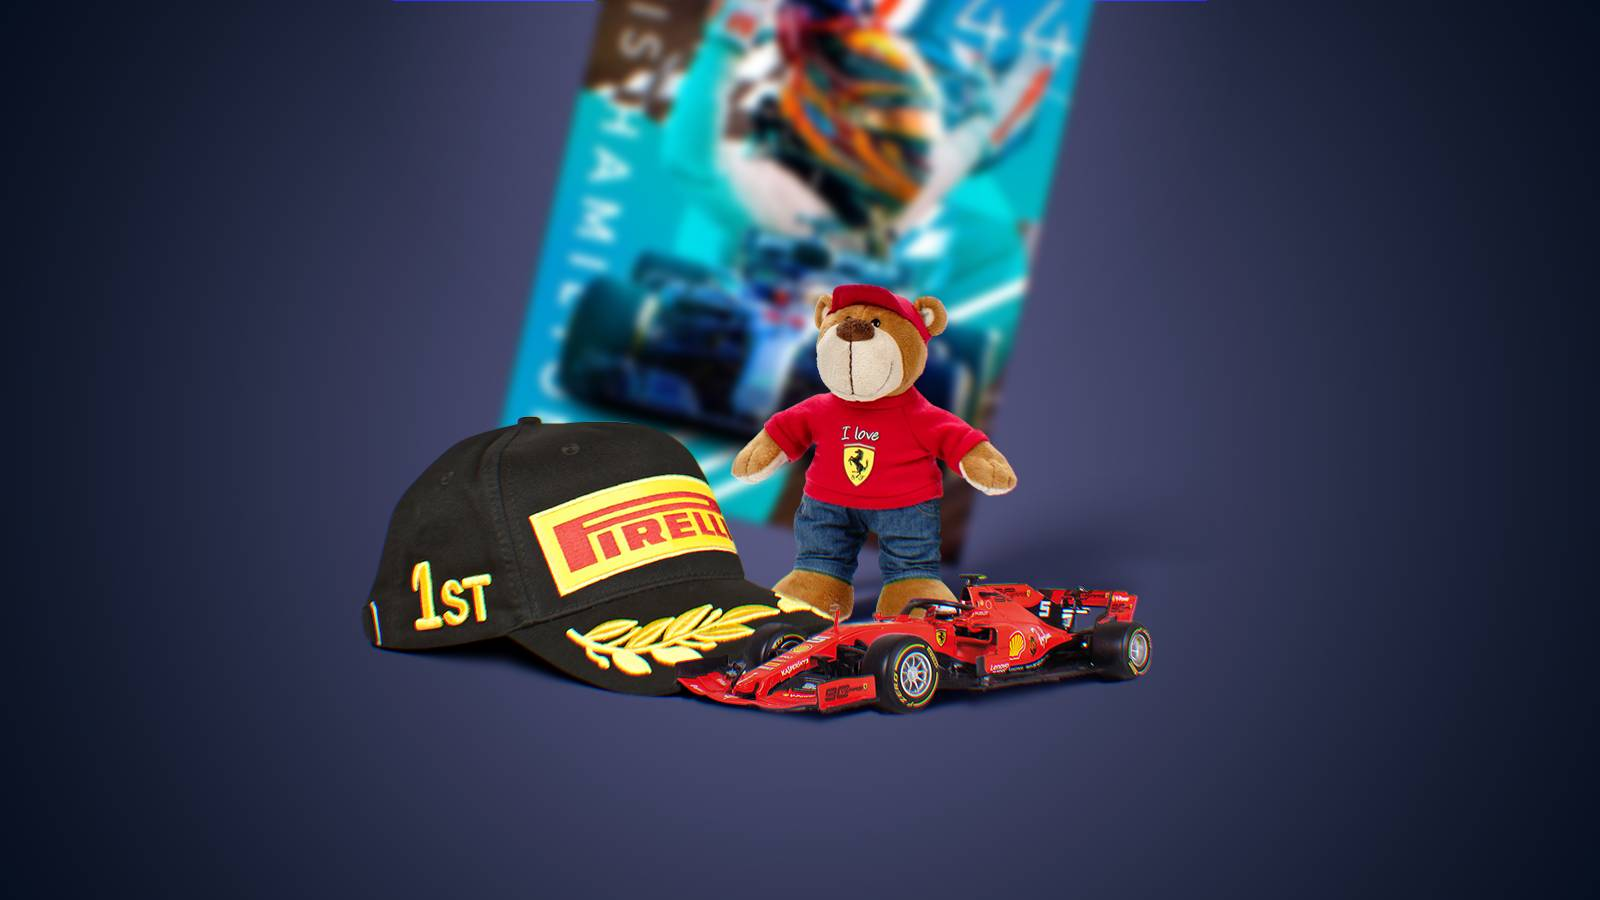 F1 merch that become phygital (get digital features) thanks to the Caer Sidi service